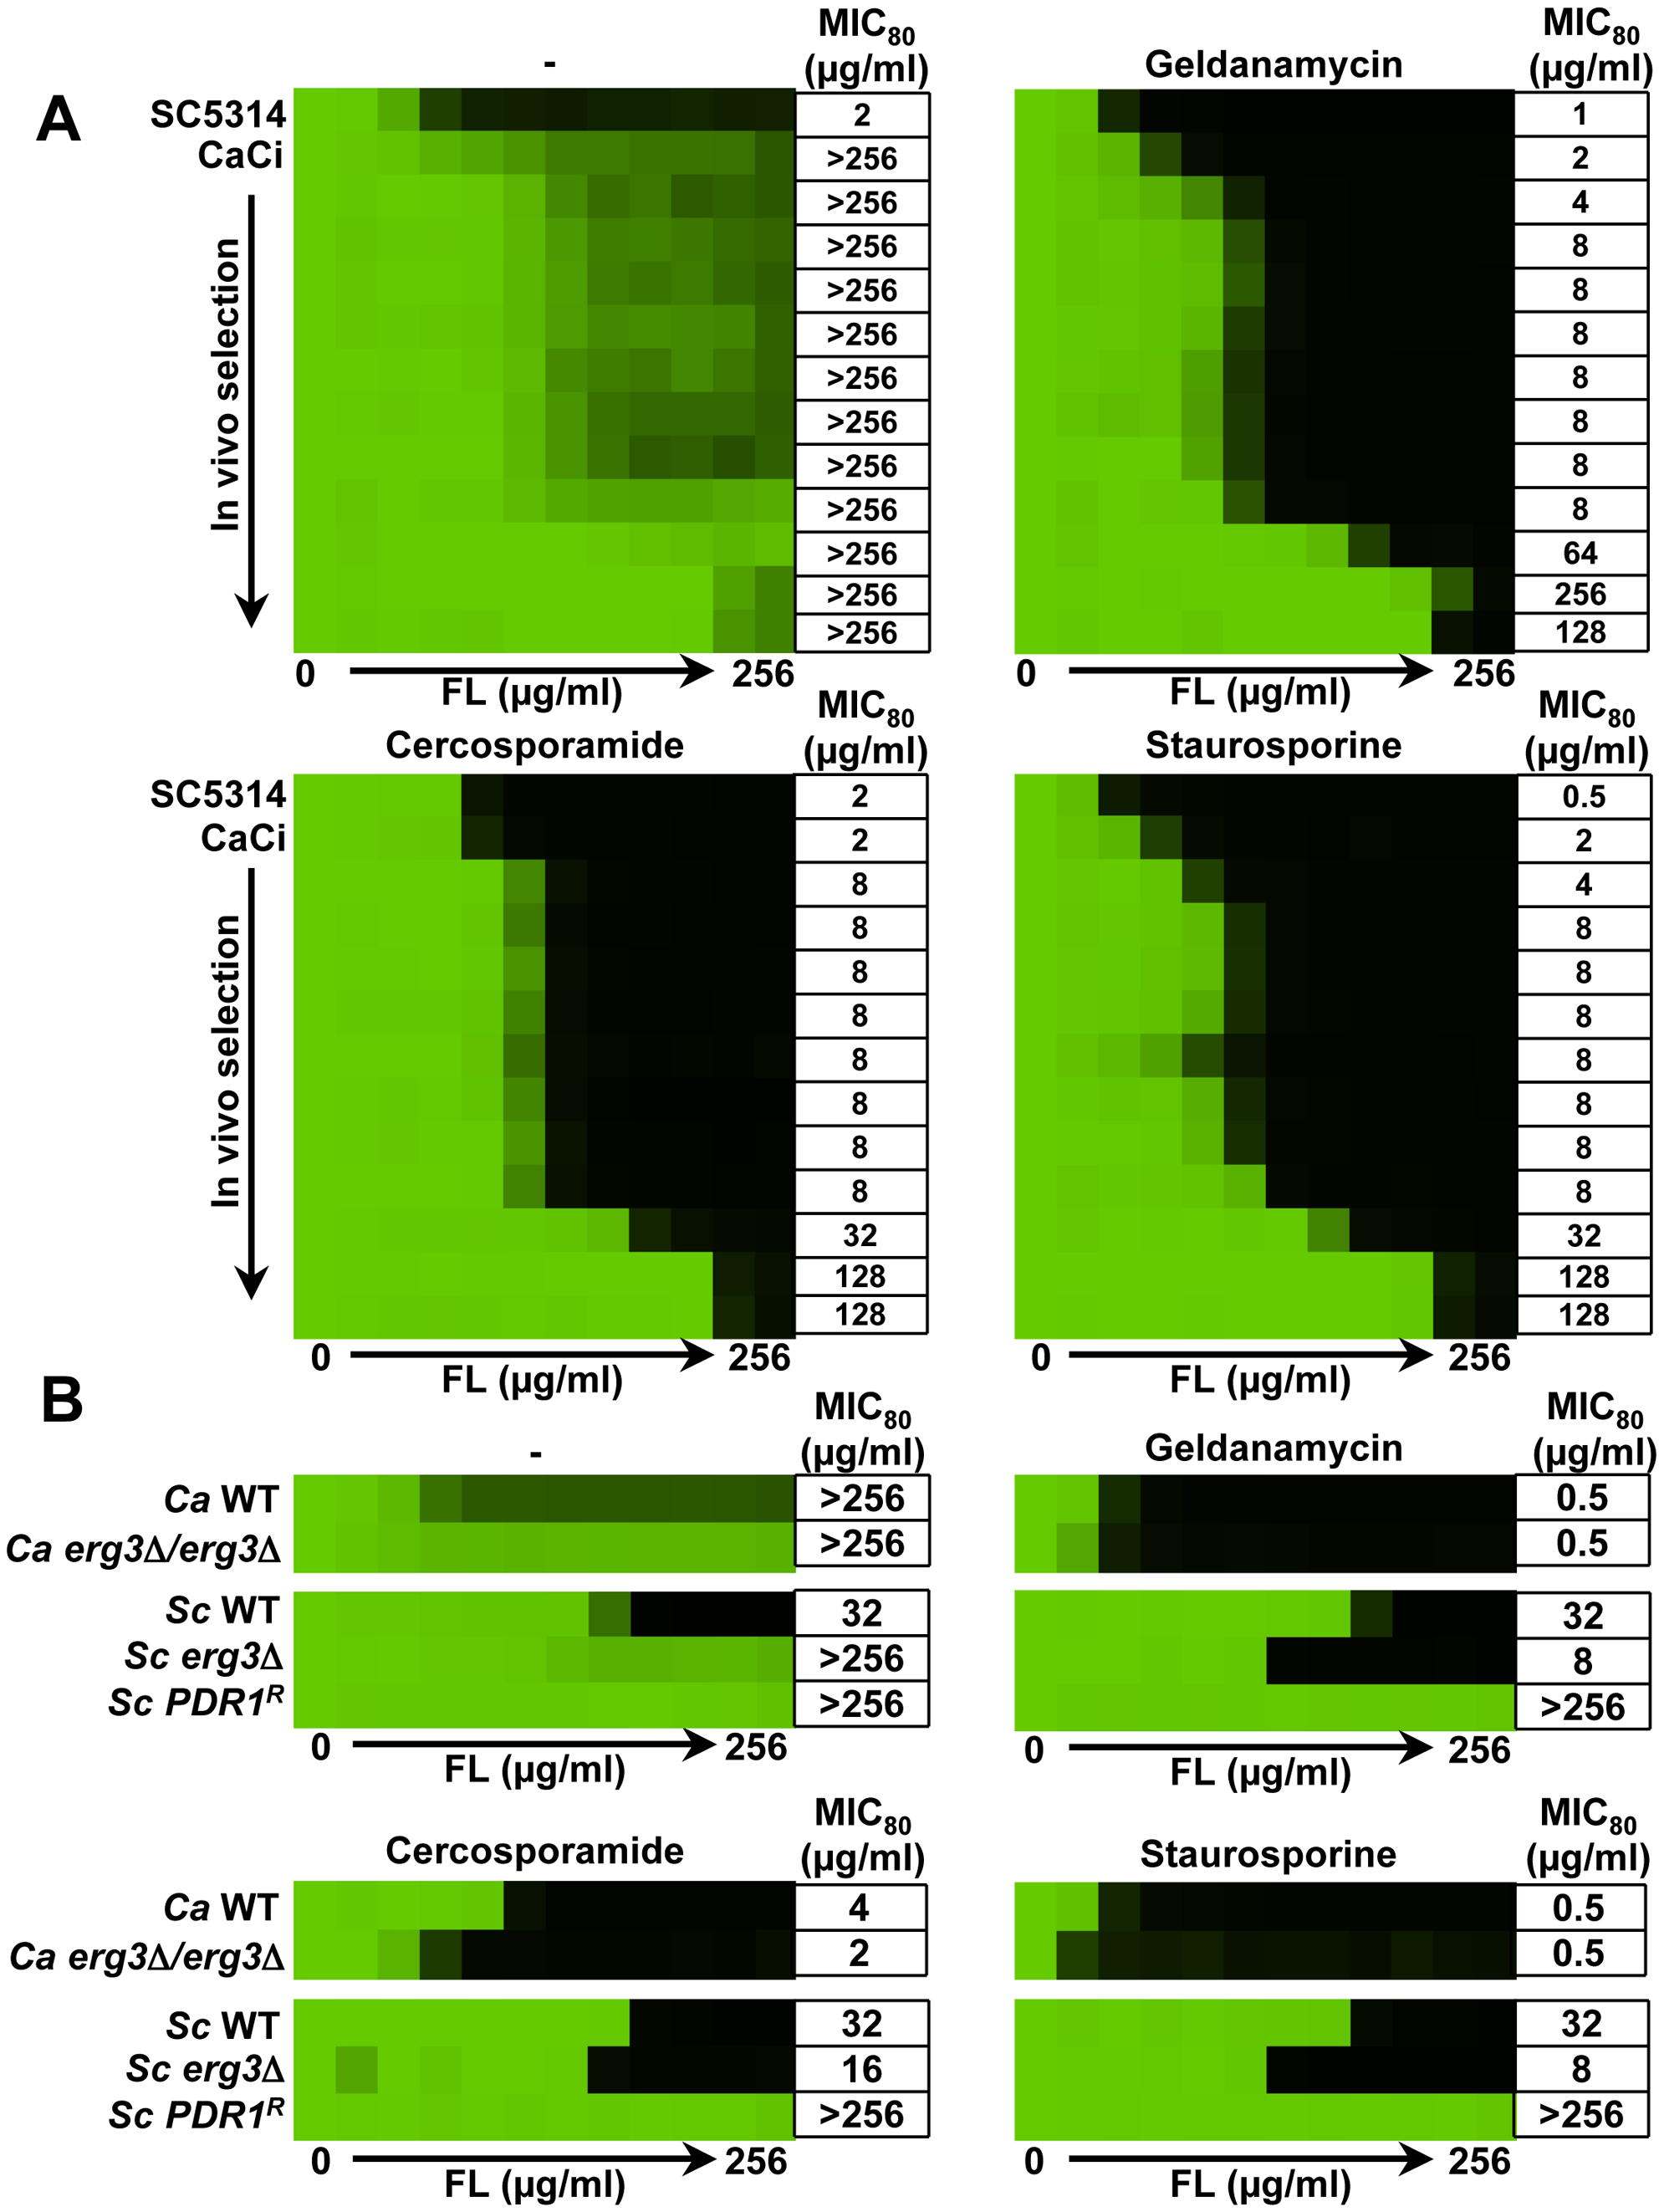 Inhibition of PKC signaling phenocopies inhibition of Hsp90 reducing azole resistance.